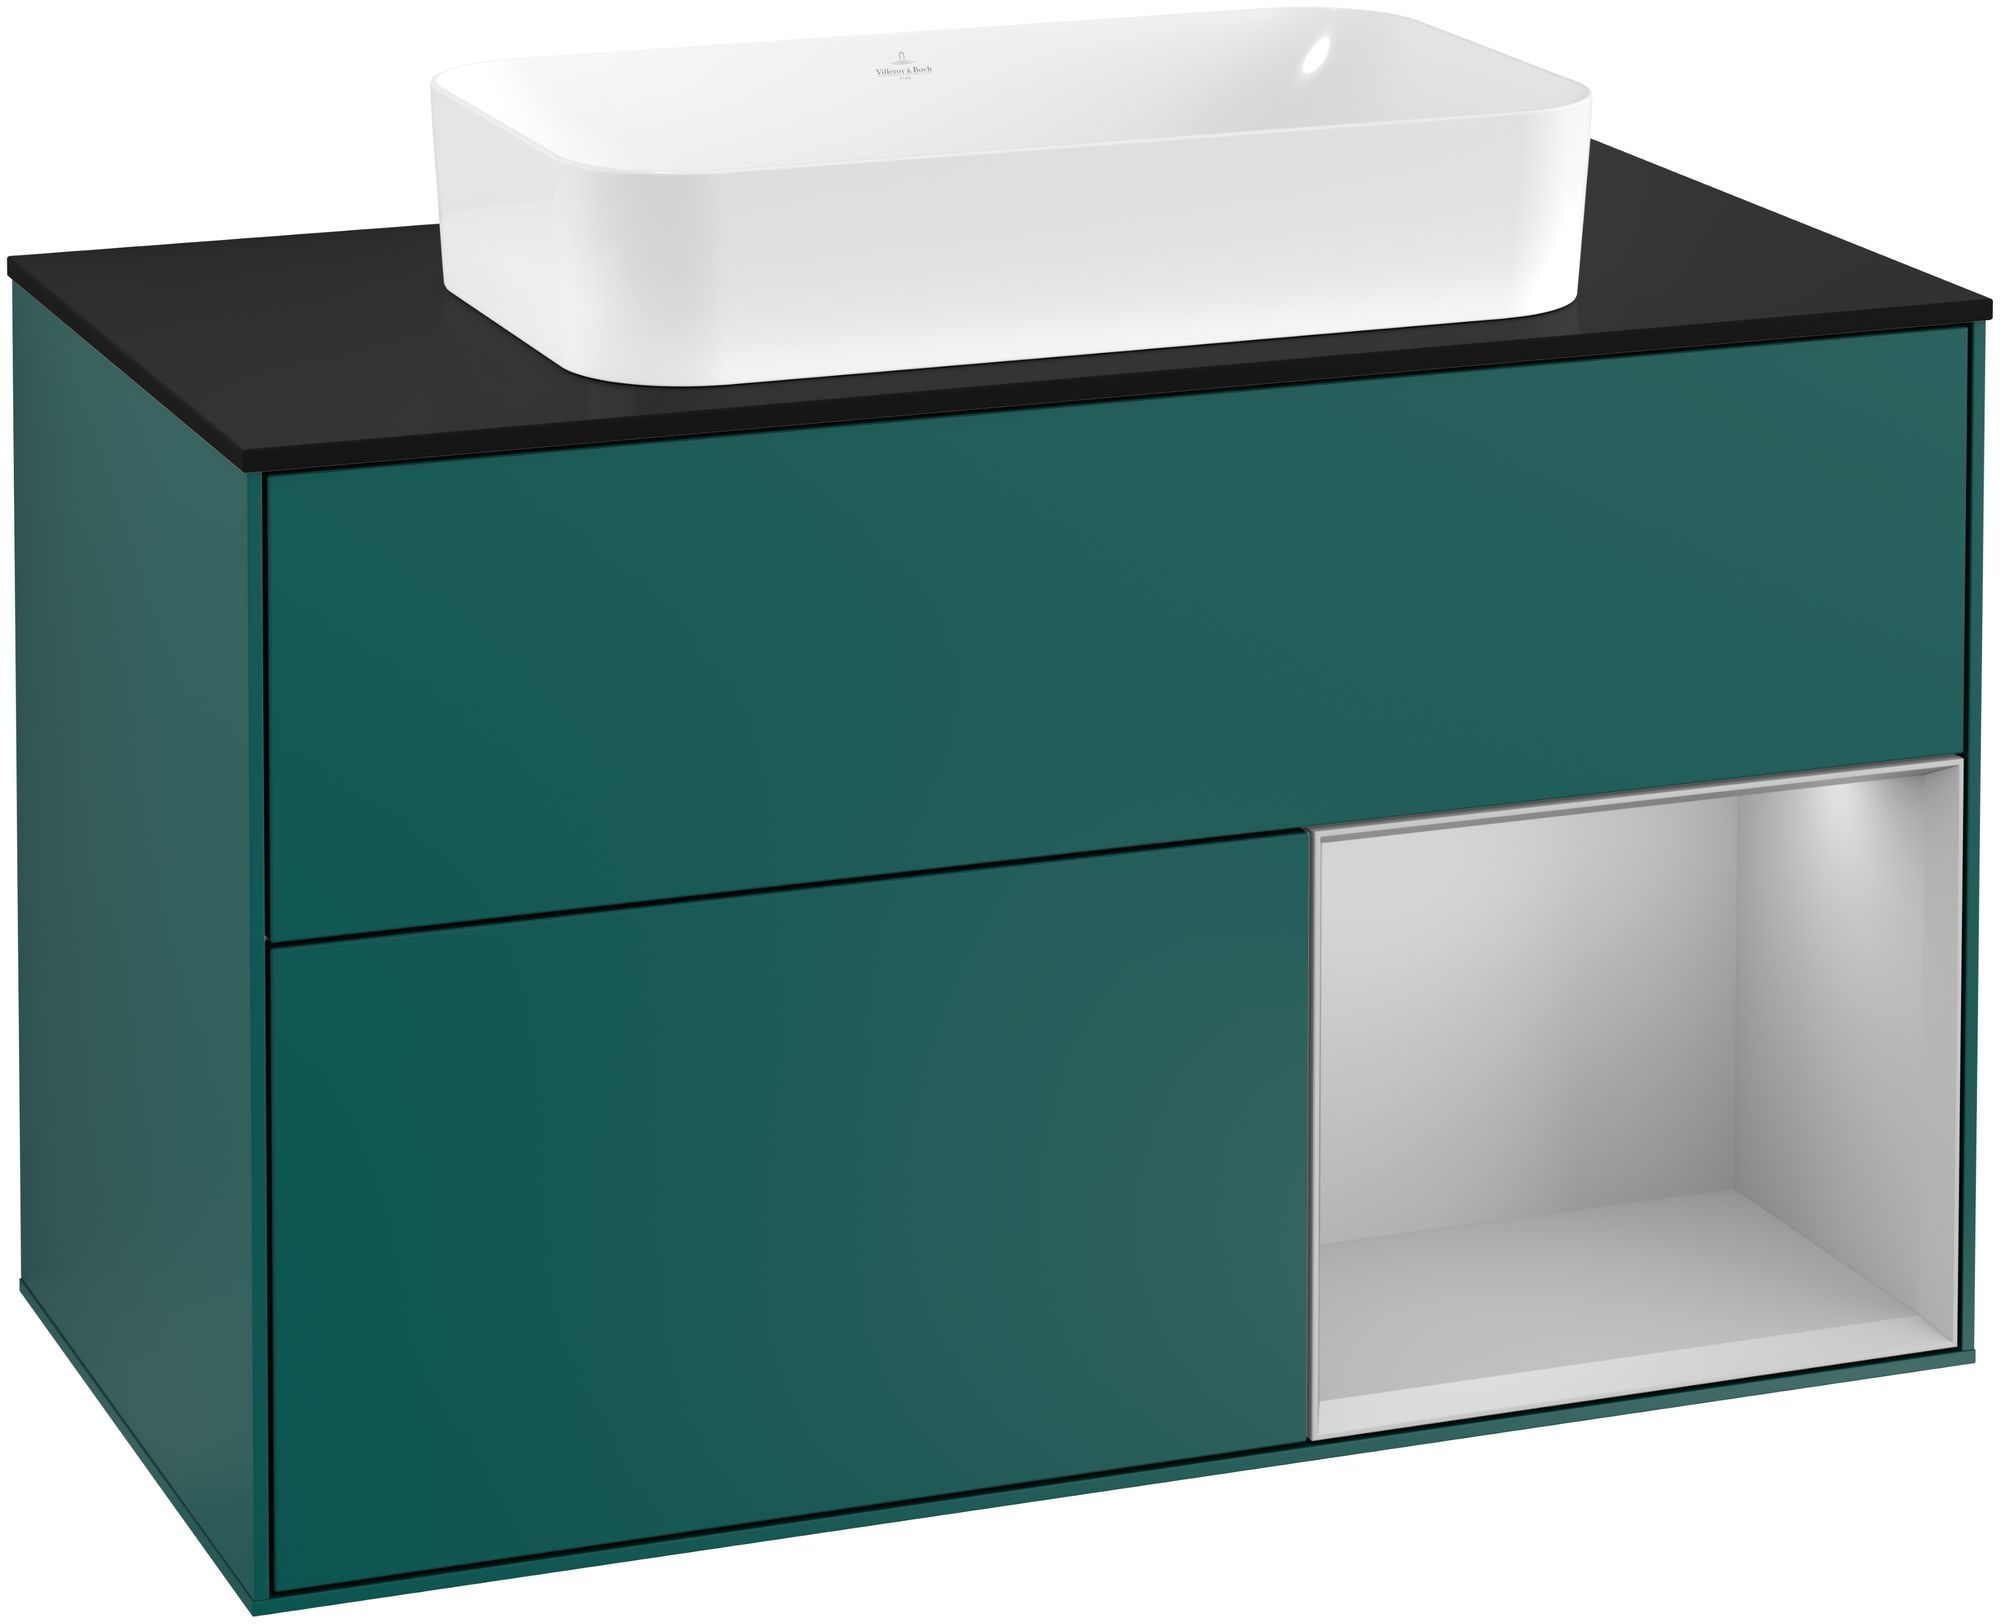 Villeroy & Boch Finion G25 Waschtischunterschrank mit Regalelement 2 Auszüge für WT mittig LED-Beleuchtung B:100xH:60,3xT:50,1cm Front, Korpus: Cedar, Regal: Light Grey Matt, Glasplatte: Black Matt G252GJGS